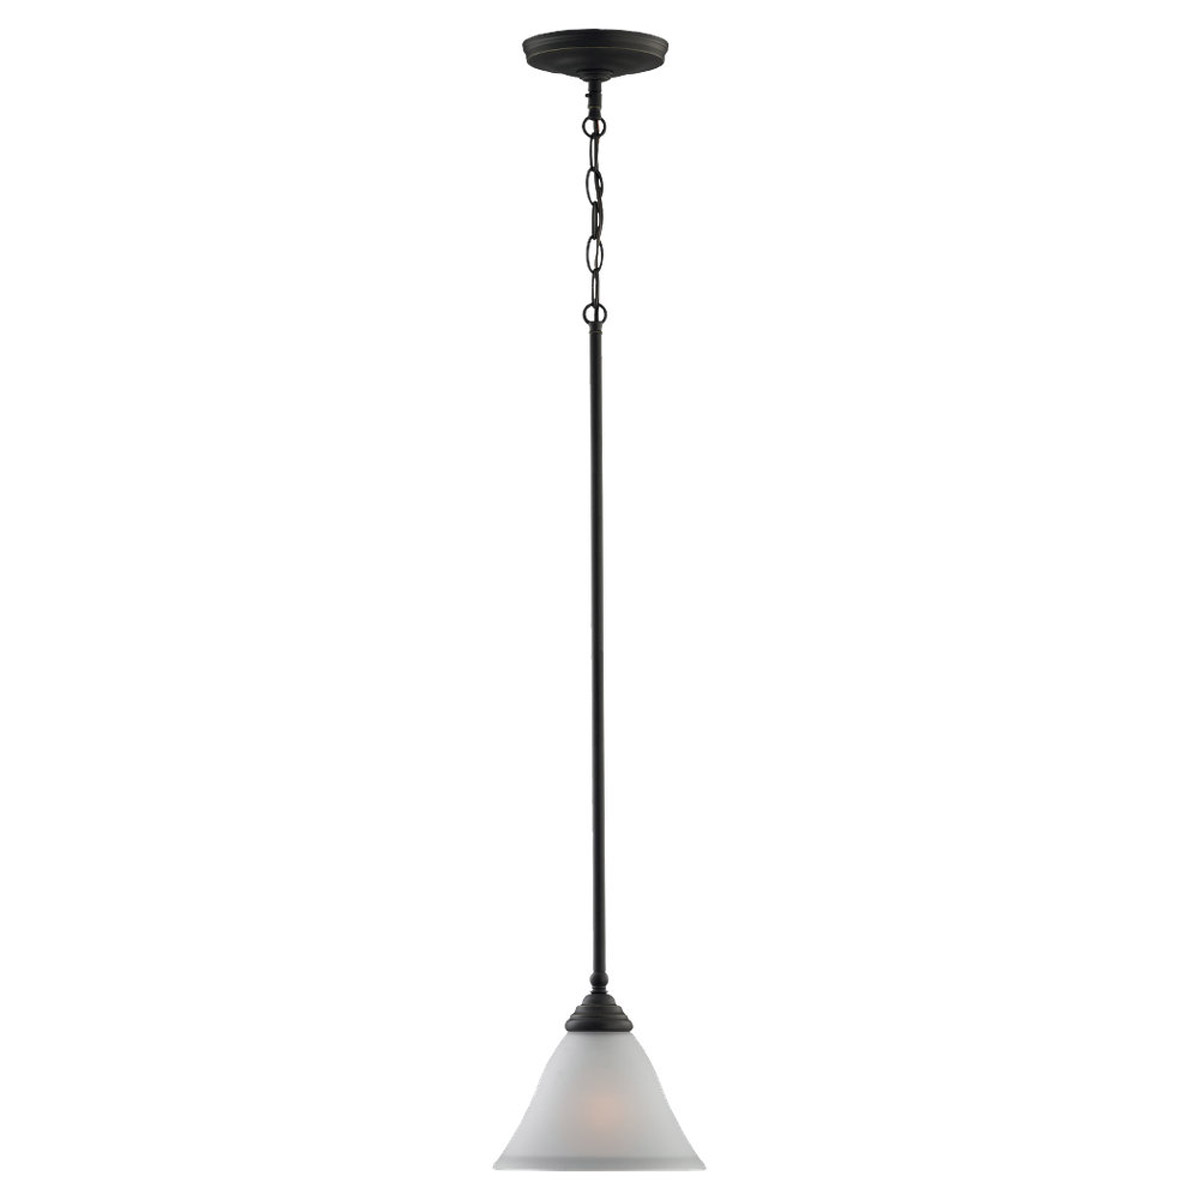 Sea Gull Lighting Albany 1 Light Mini Pendant in Heirloom Bronze 61575-782